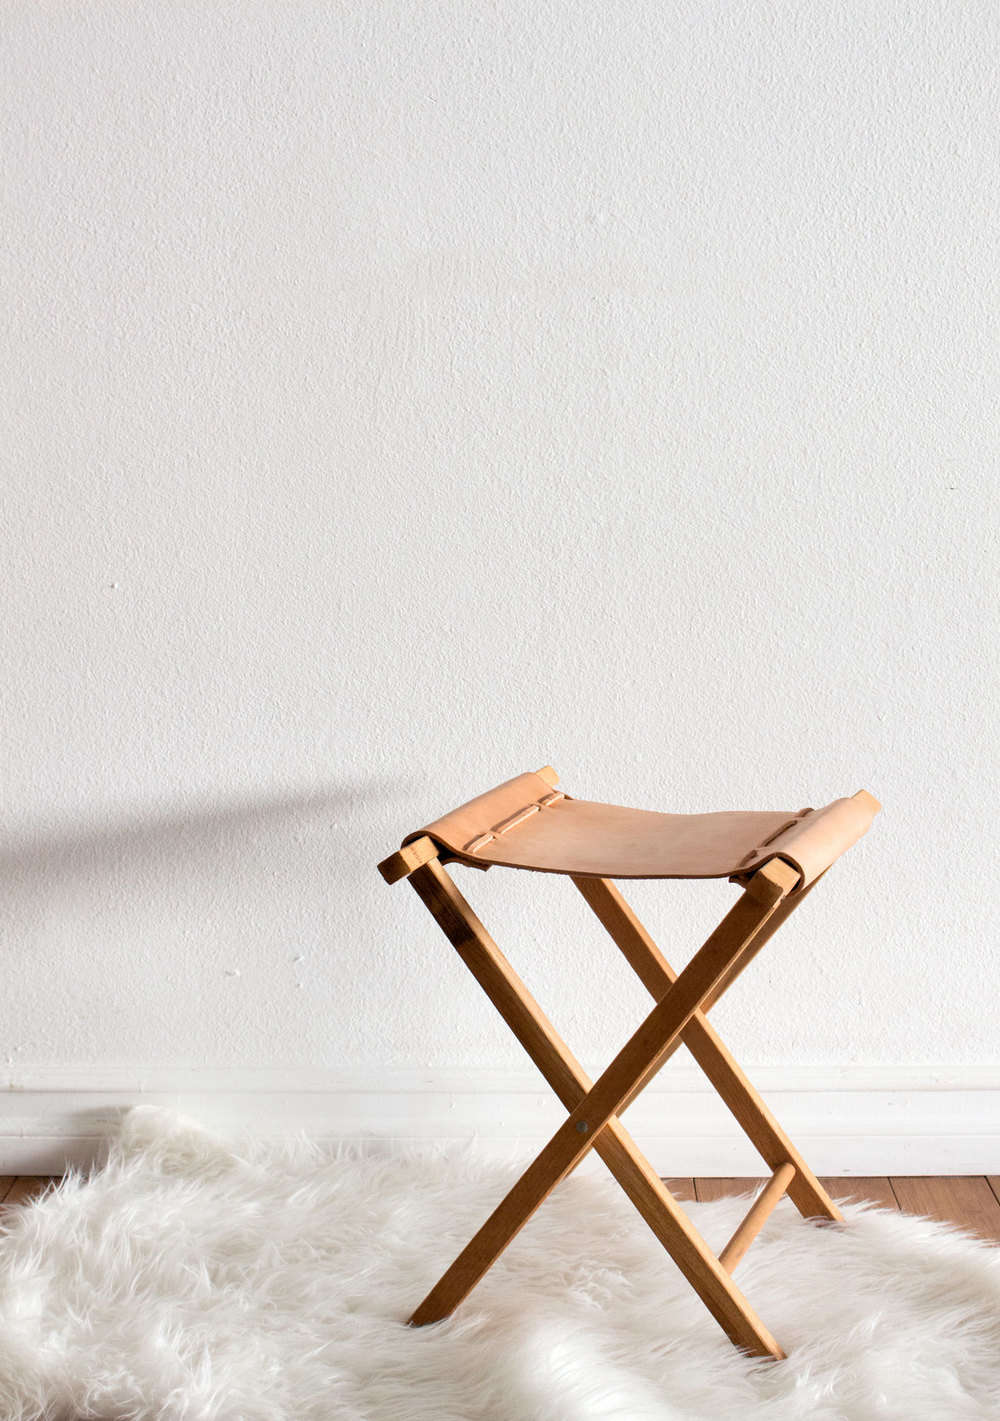 sonia scarr's leather camp stool 11